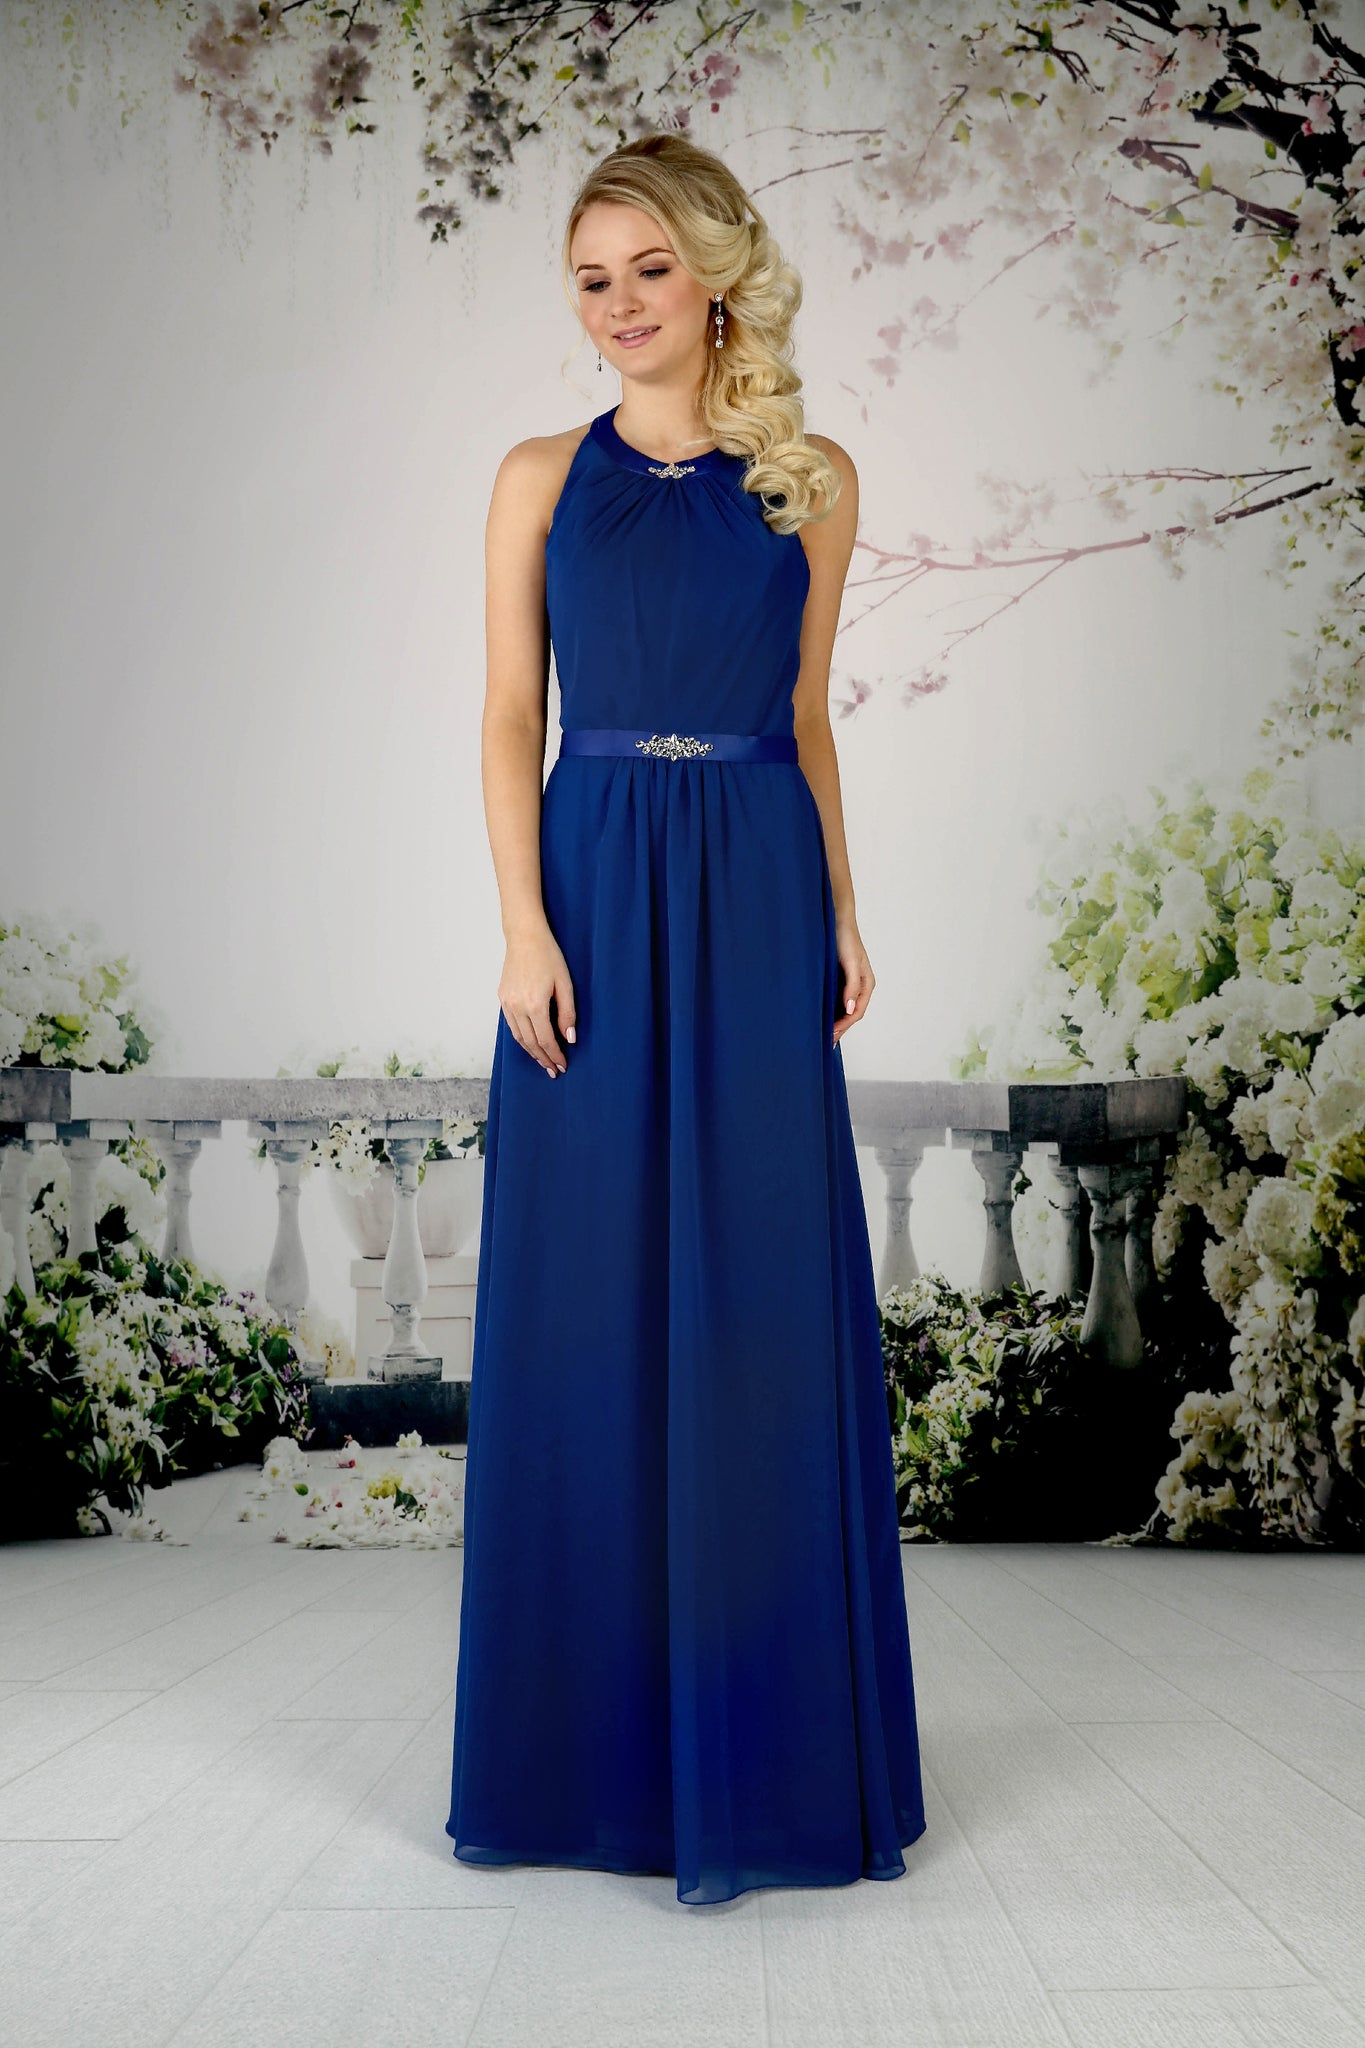 Chiffon halterneck gown from the Emma Bridals collection